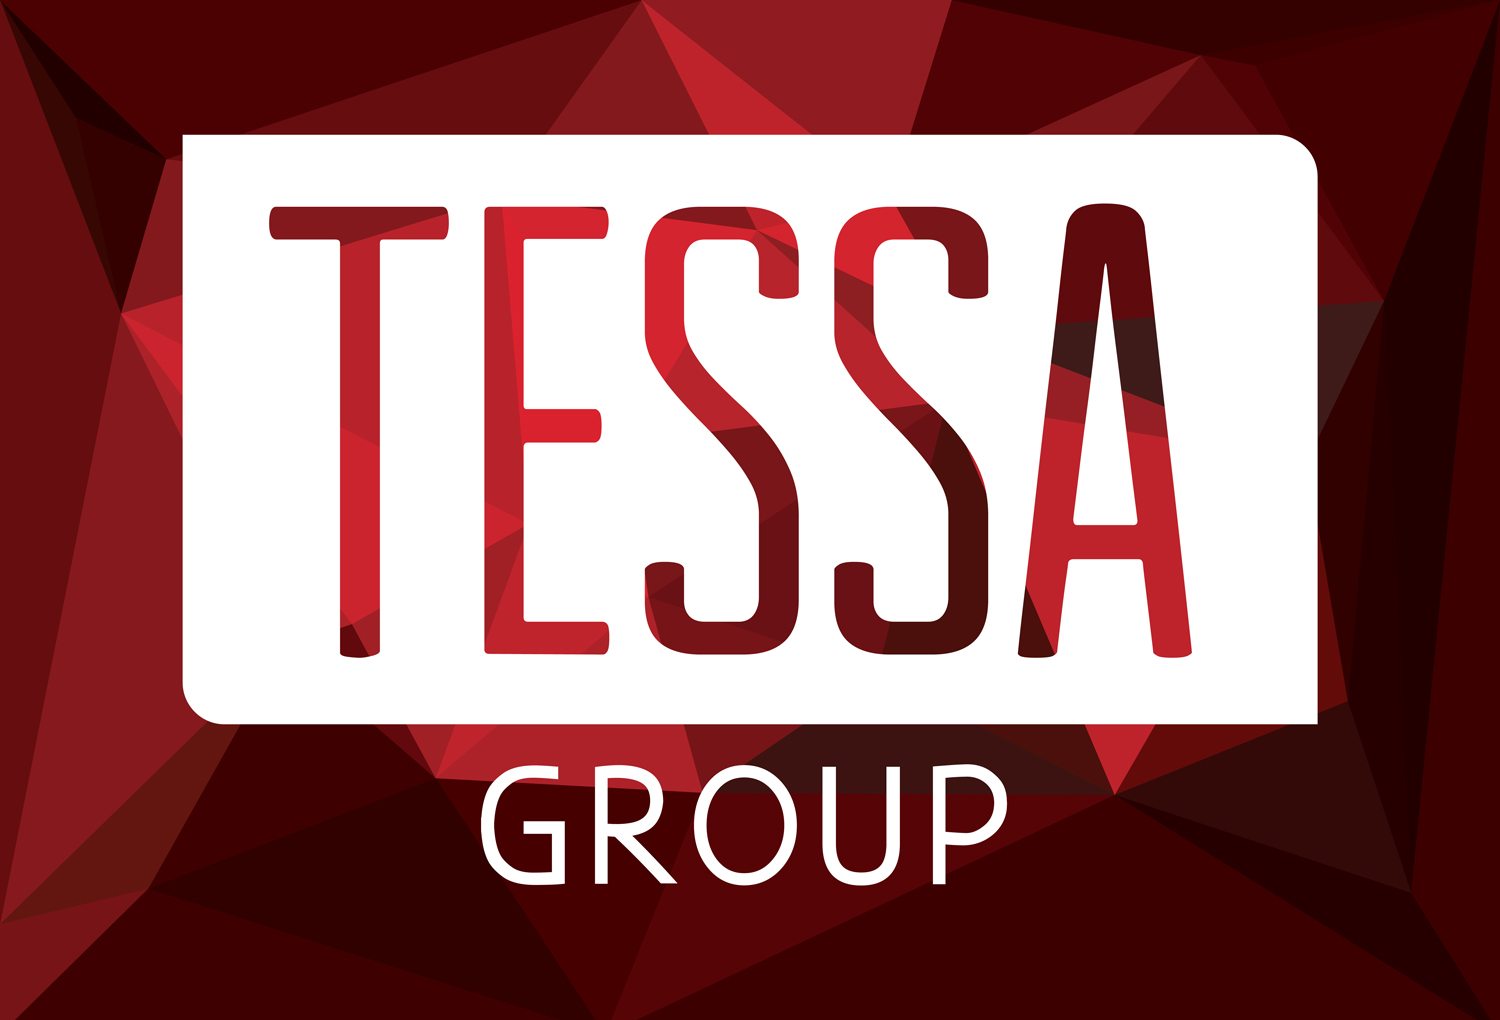 Tessa Group Logo and Pattern